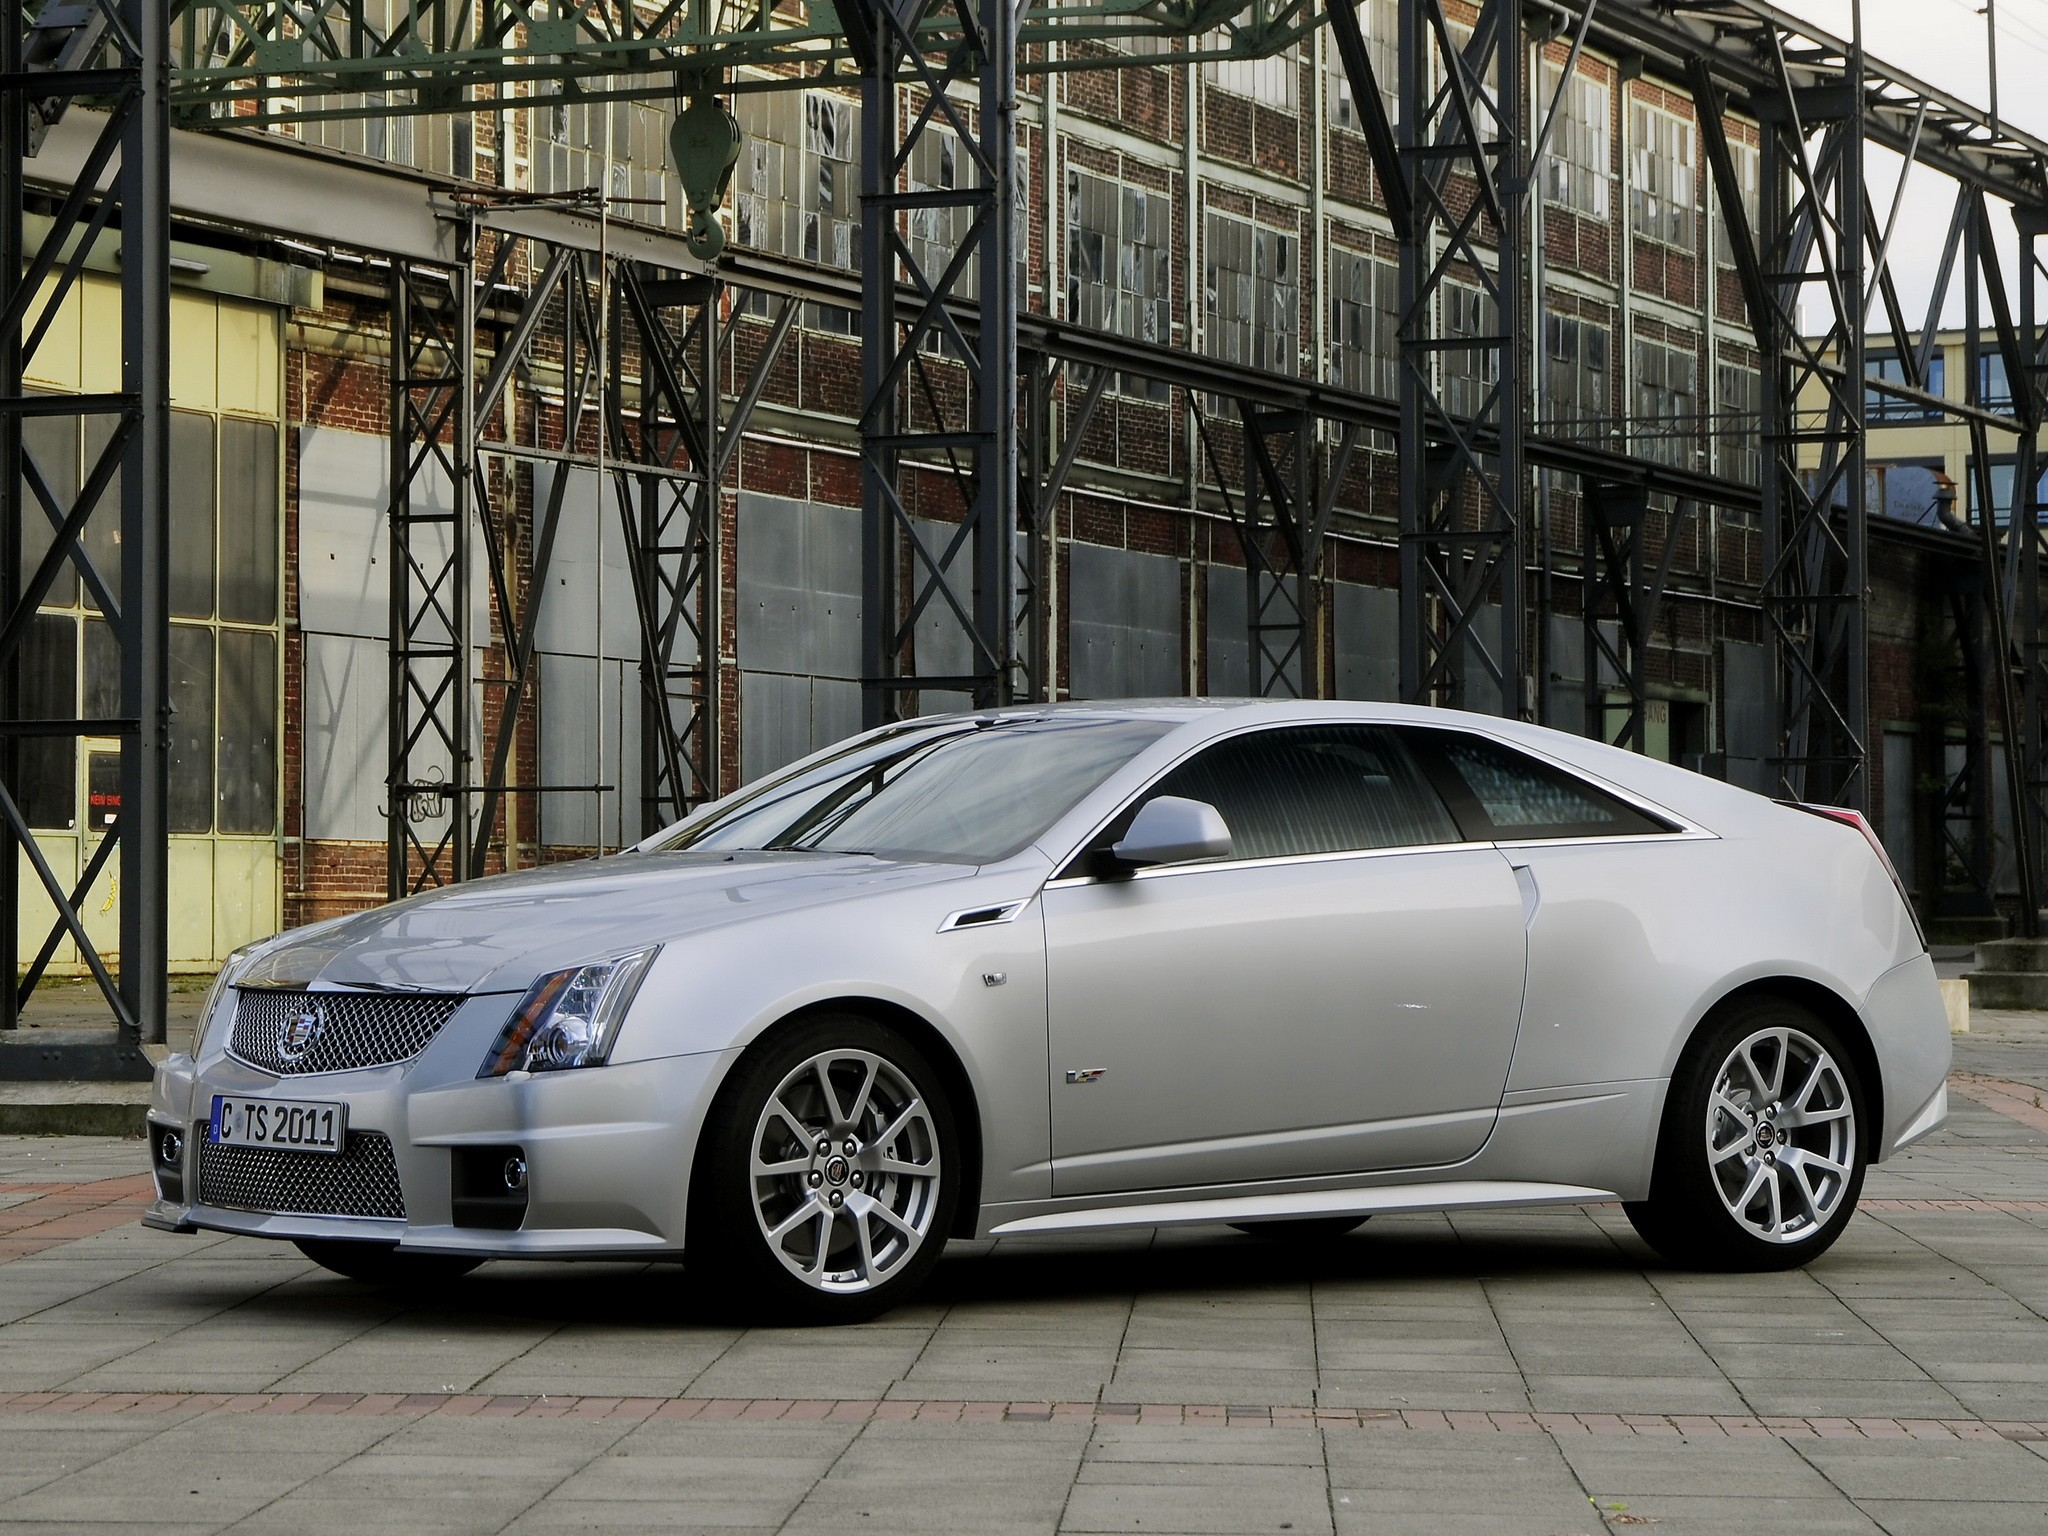 cts cadillac coupe autoevolution specs performance series models present